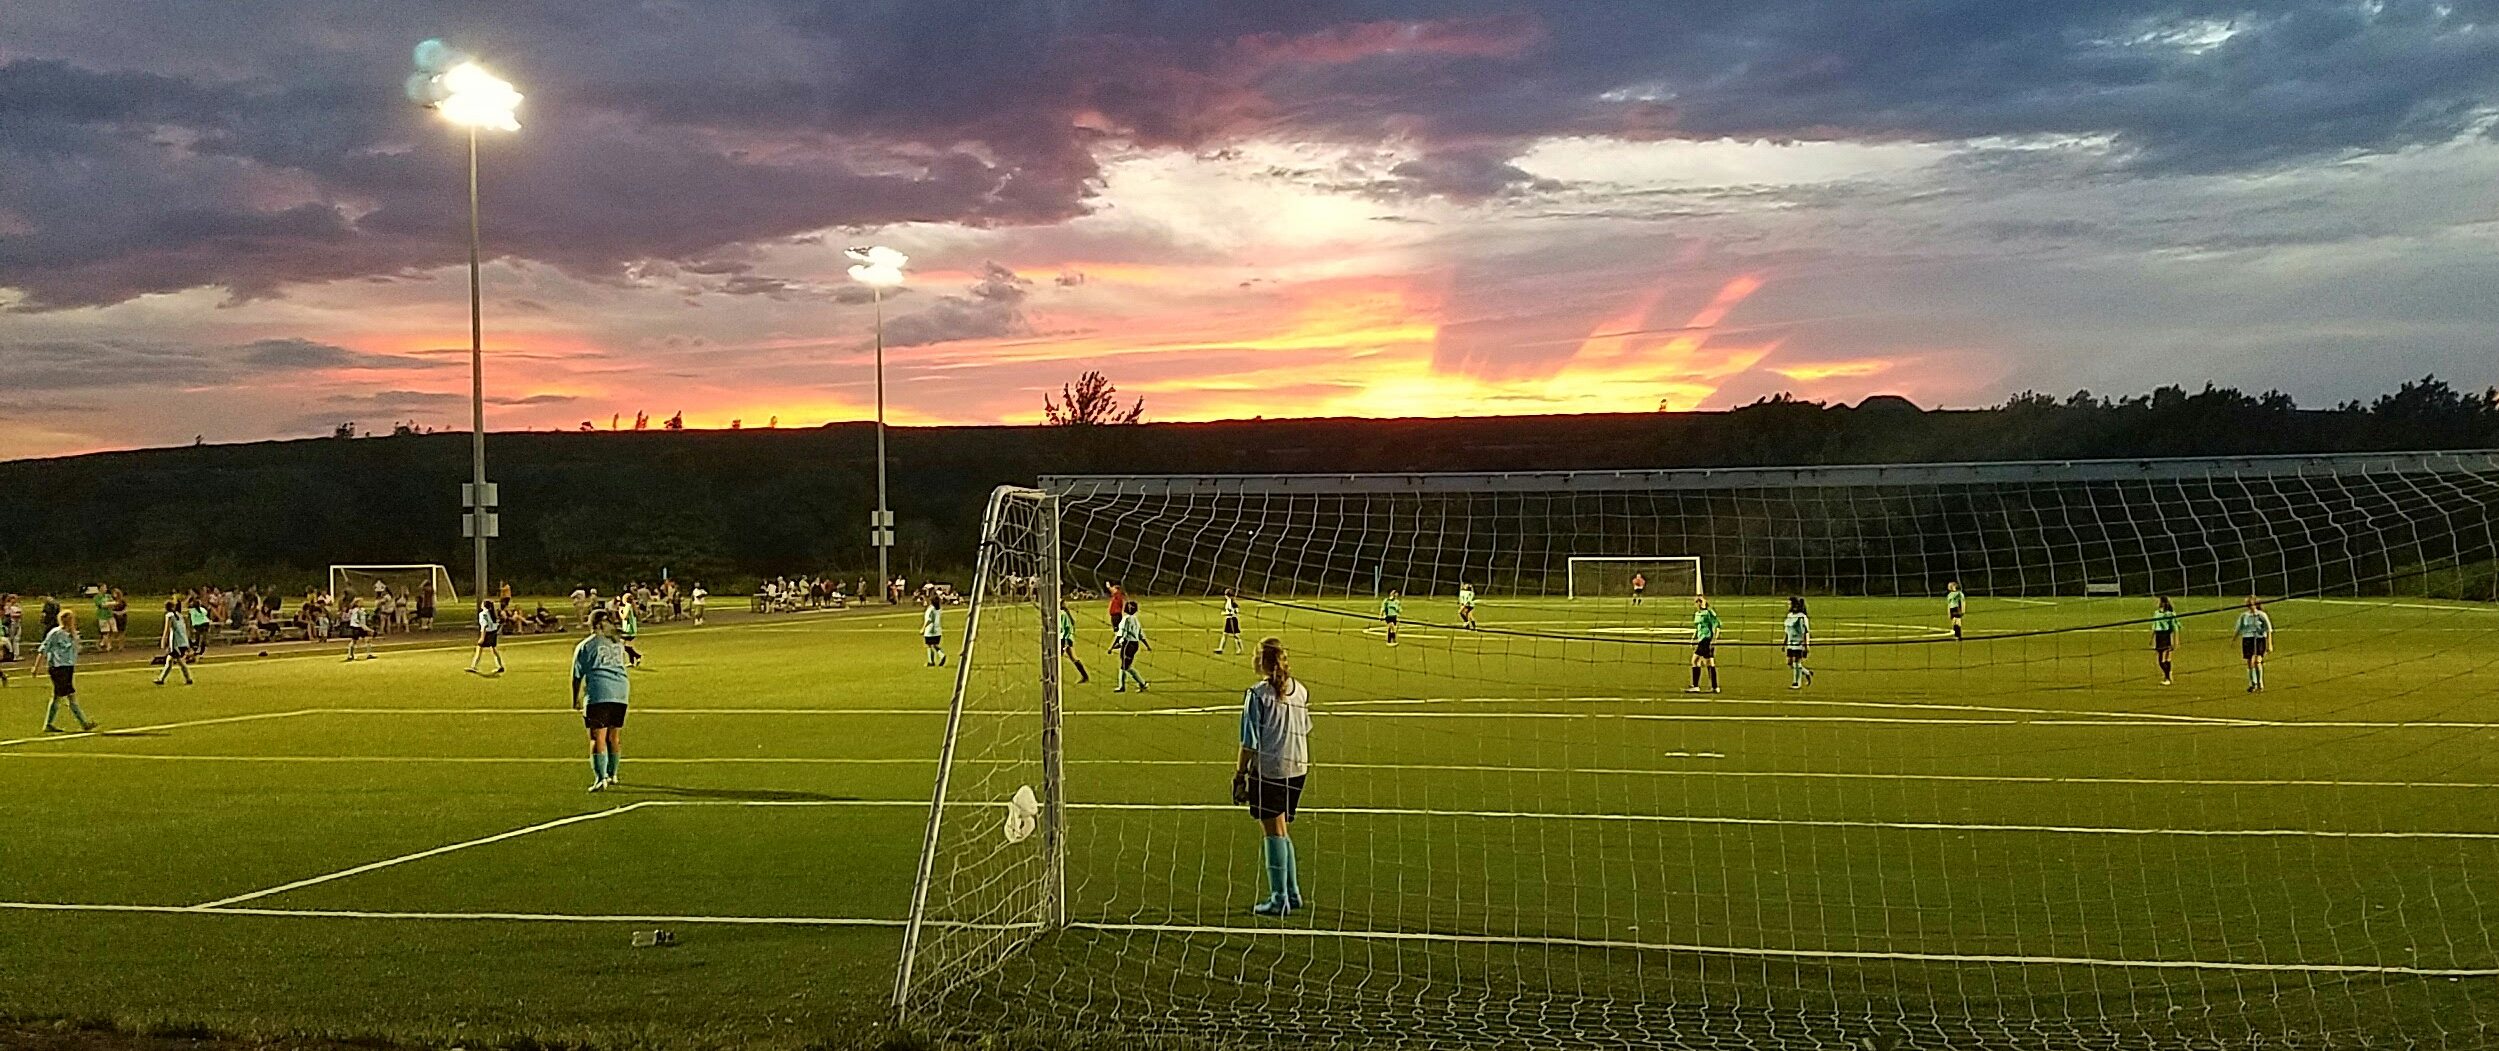 Soccer field owl hollow sunset